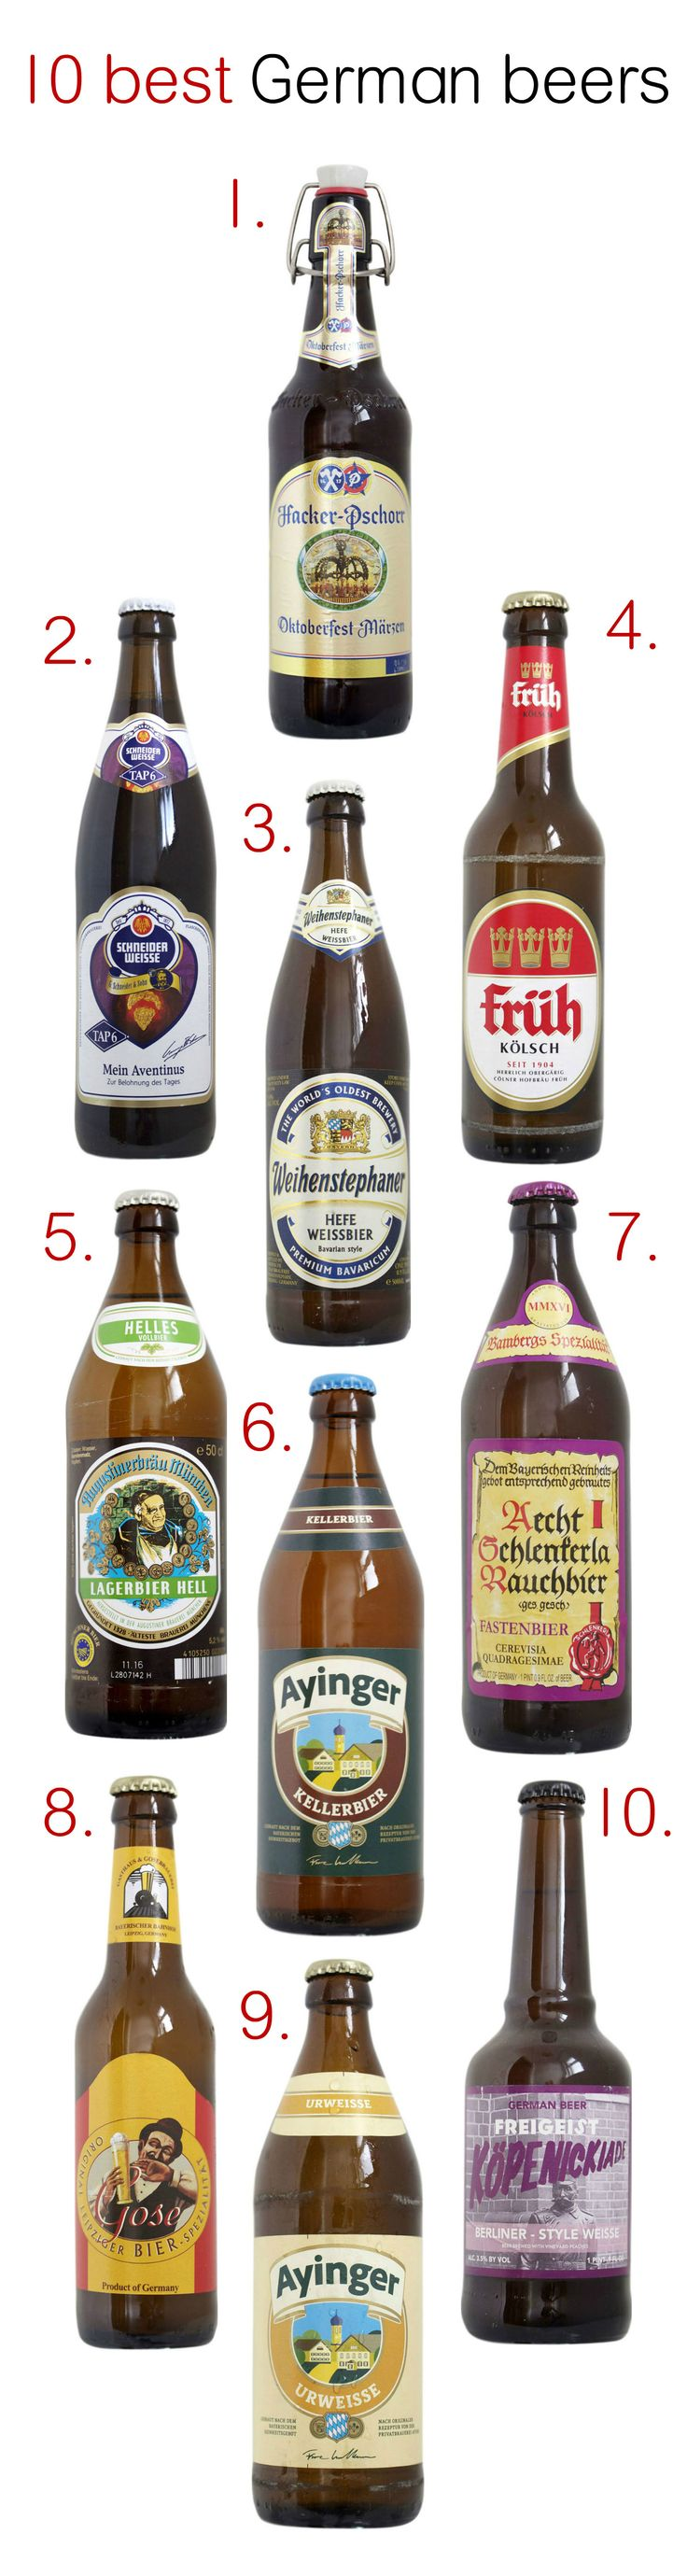 Put on your Lederhosen and grab a stein, because Oktoberfest is almost upon us. Here are the best beers from Germany: 1. Hacker-Pschorr Oktoberfest Märzen 2. Schneider Weisse Tap 6 3. Weihenstephan Hefe Weissbier 4. Fruh Kolsch 5. Augustiner Helles 6. Ayinger Urweisse 7. Brauerie Heller, Aecht Schlenkerla Rauchbier Fastenbier 8. Bayerischer Banhof Original Leipziger Gose 9. Ayinger Kellerbier 10. Freigeist Kopenickiade. Get all the info here: http://ind.pn/2c9NueH